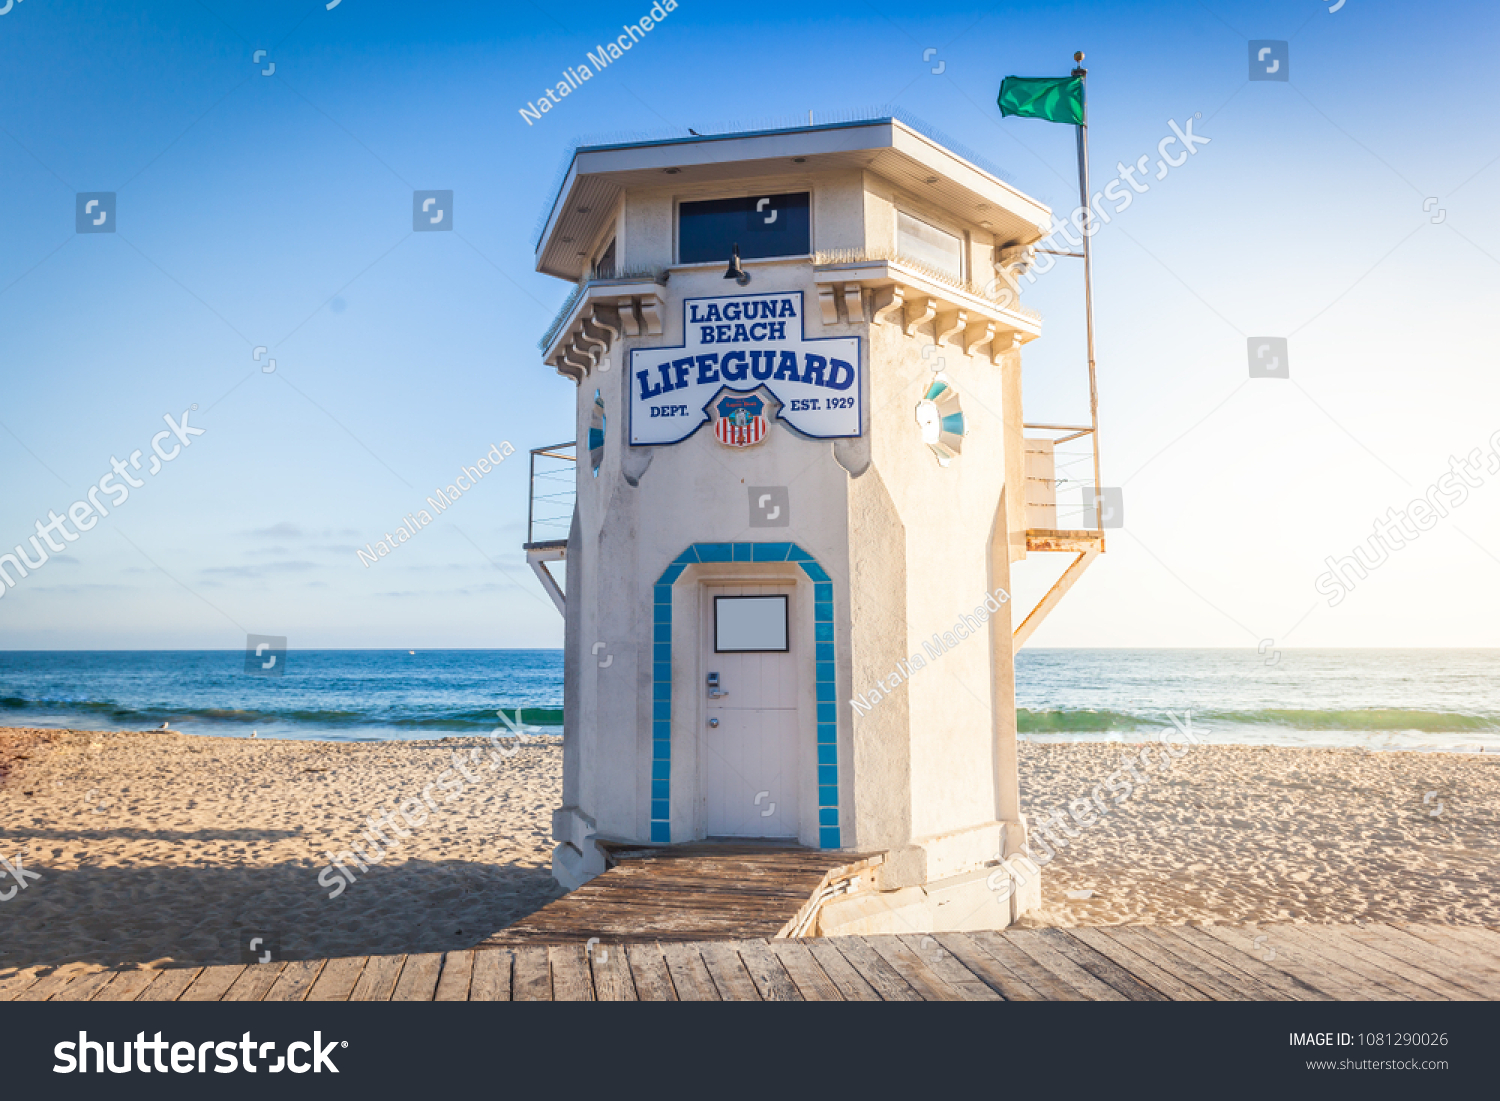 Shabby Chic Cuxhaven Laguna Beach Lifeguard Tower Sunset Light Stock Photo Edit Now